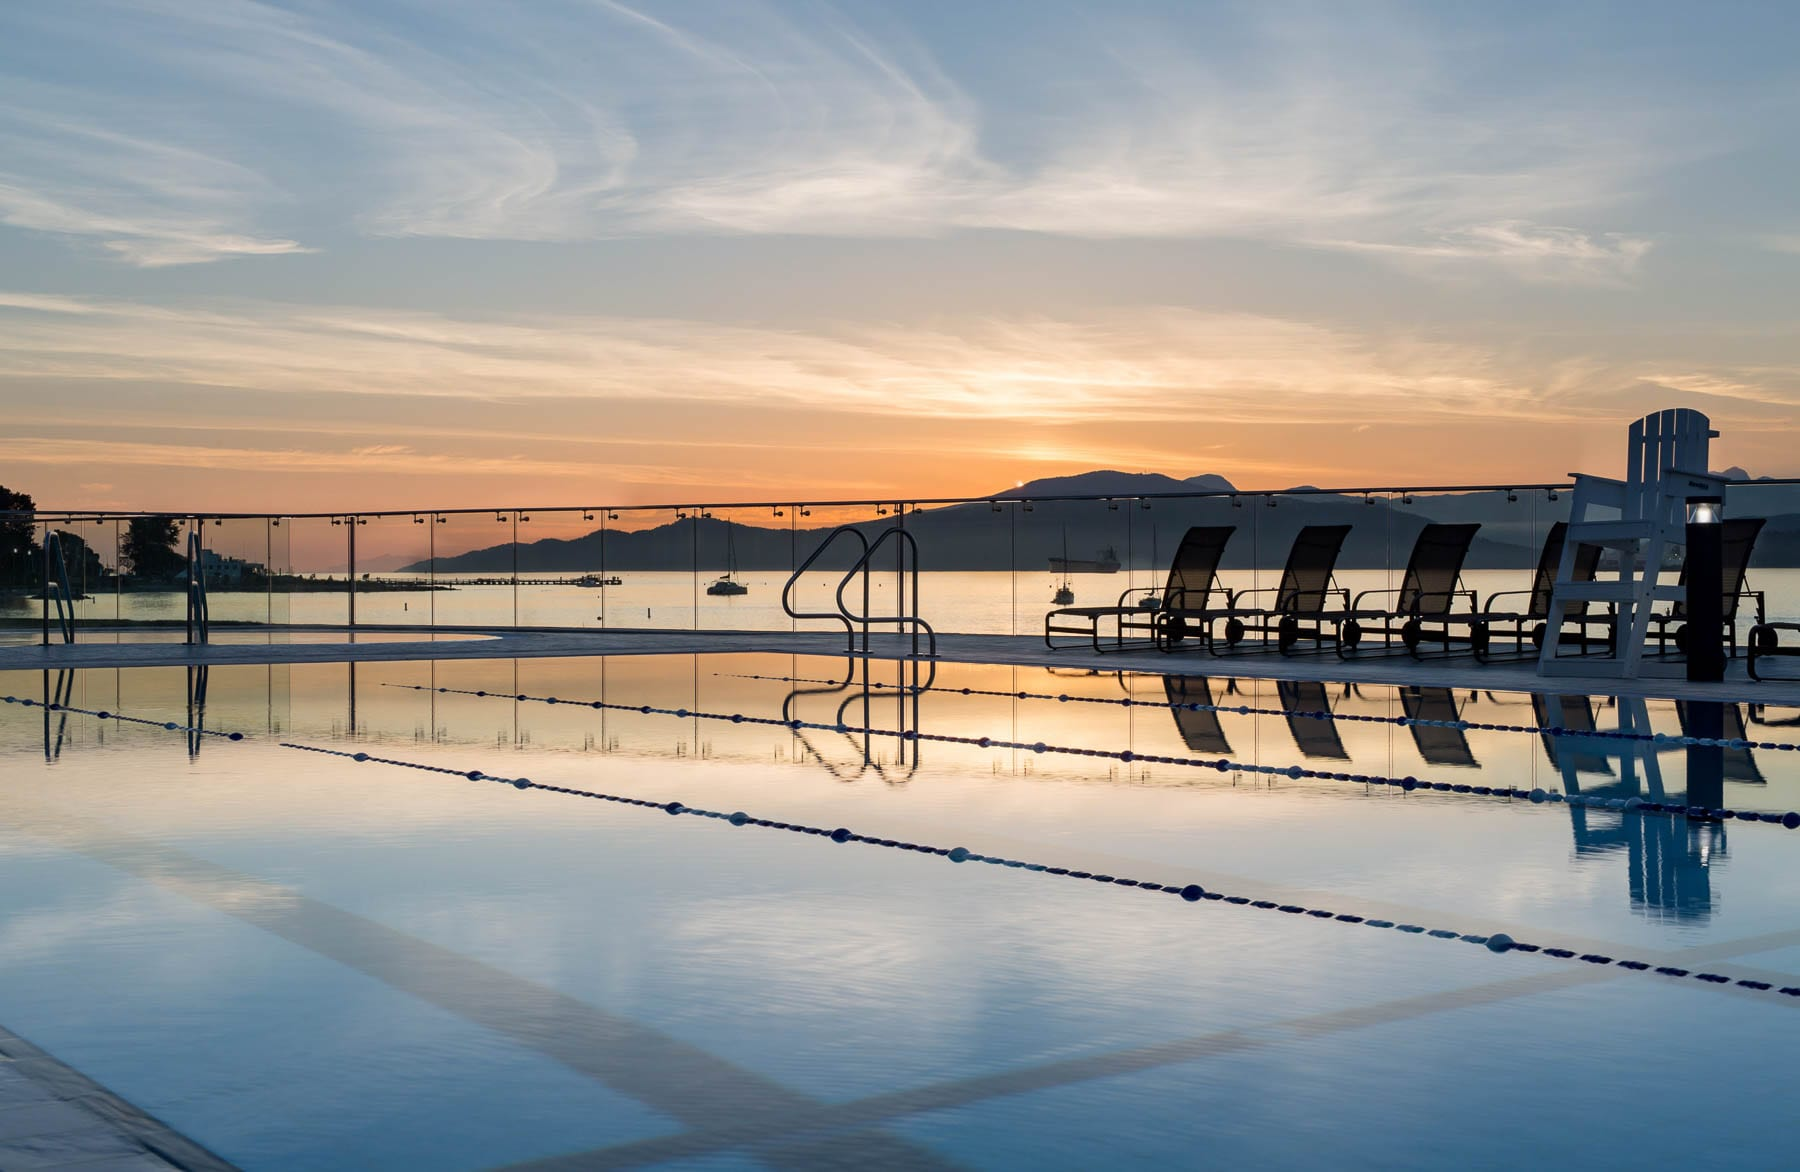 Renovated point grey outdoor swimming pool at beautiful sunset overlooking Vancouver North Shore mountains